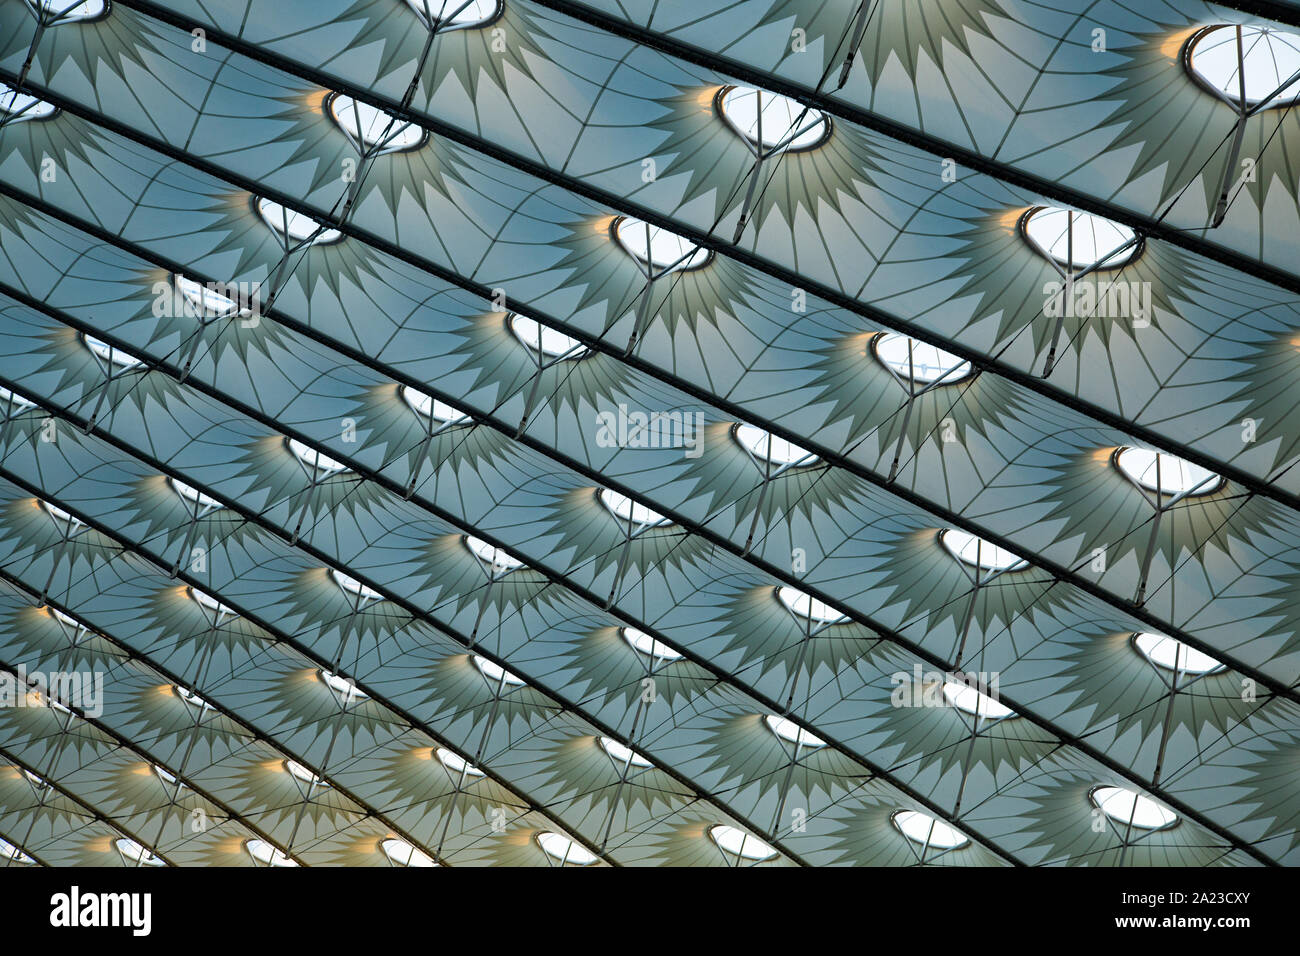 Stadium Roof Design With Geometric Shapes Abstract Background Building Structure Stock Photo Alamy